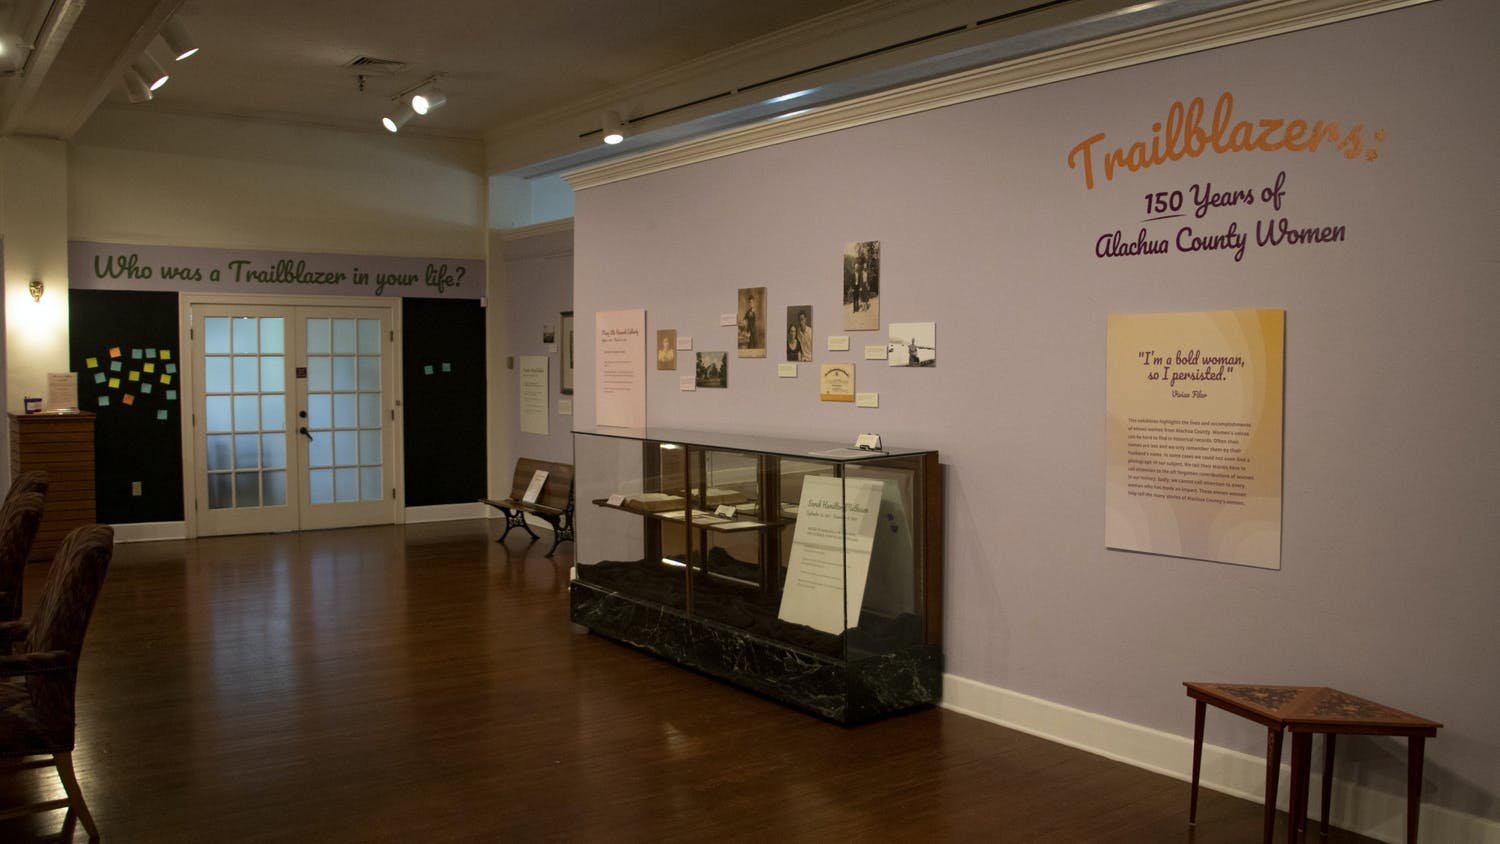 The current exhibit at Matheson History Museum, Trailblazers: 150 Years of Alachua County Women, is seen on Wednesday, Sept. 1, 2021. The exhibit was originally supposed to open on March 24, 2020, but the museum closed due to COVID-19 on March 17, 2020. The exhibit opened in April of this year instead.